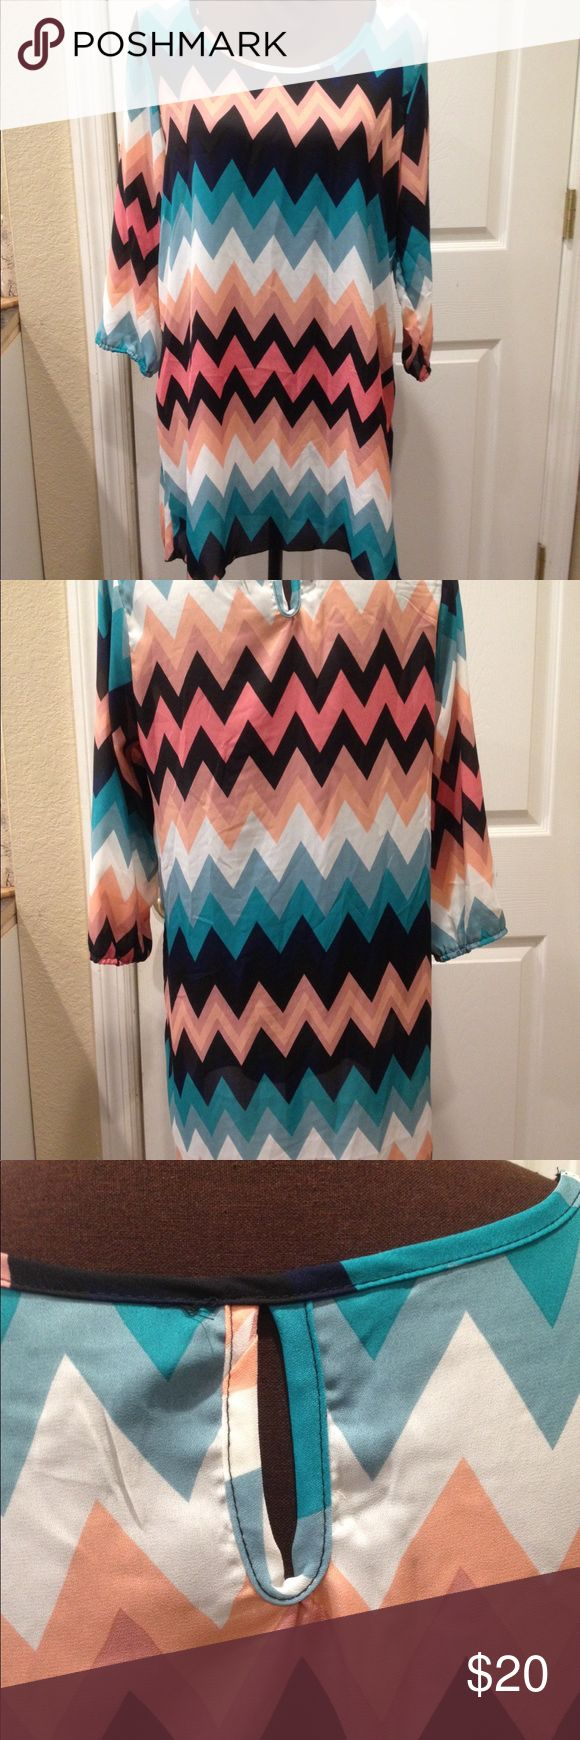 "Rue 21 long sleeve multi colored chevron top. Like new Rue 21 long sleeved multi colored chevron top with small key hole back at the neck and belt loops on sides. 100% polyester. 21"" arm pit to arm pit and 31"" length of back. See photos for details. From a smoke free home. Rue 21 Tops"